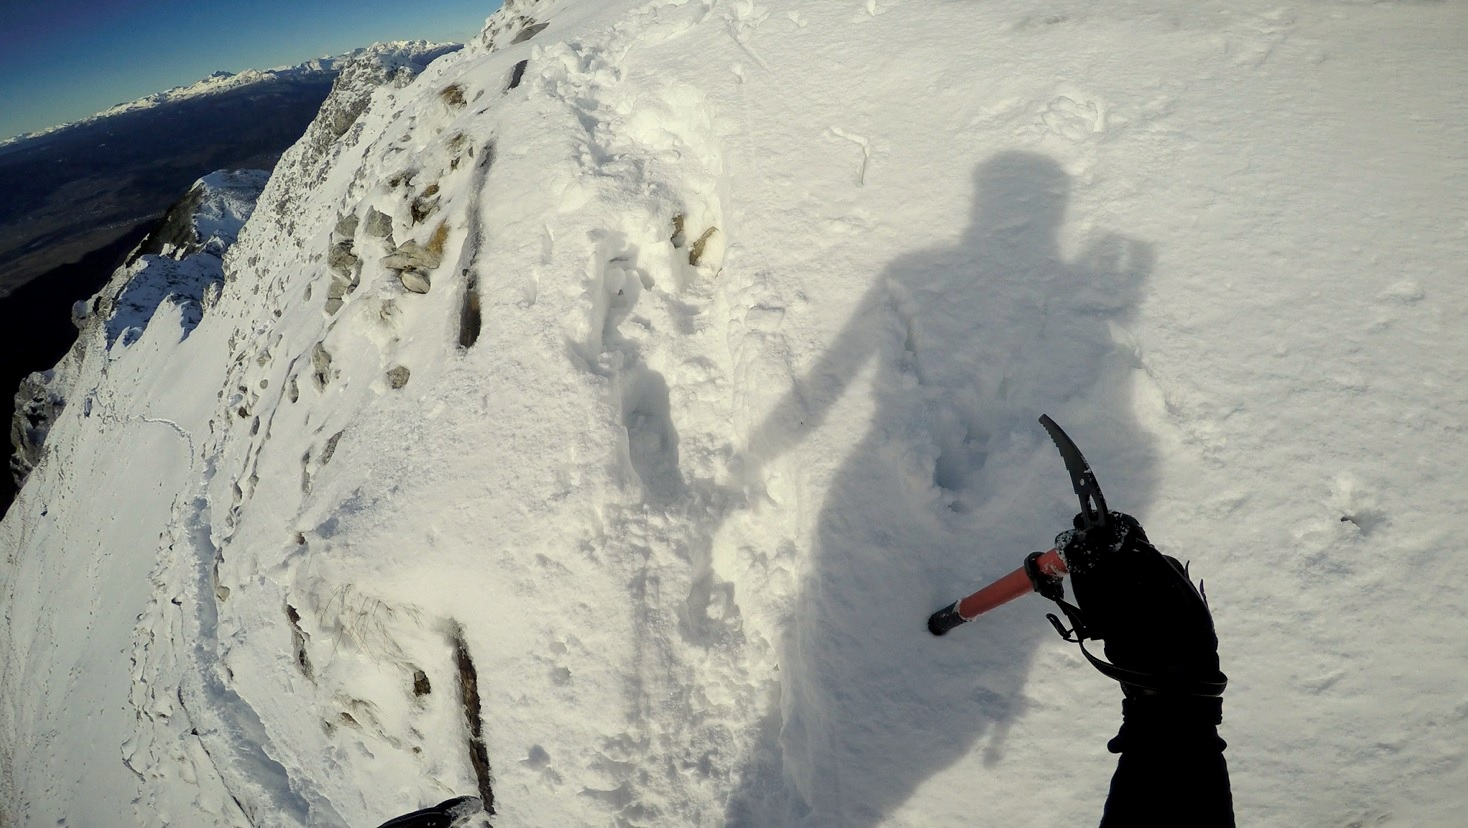 The last part was a bit tricky, so to be on the safe side, I replaced the hiking poles with an ice axe.